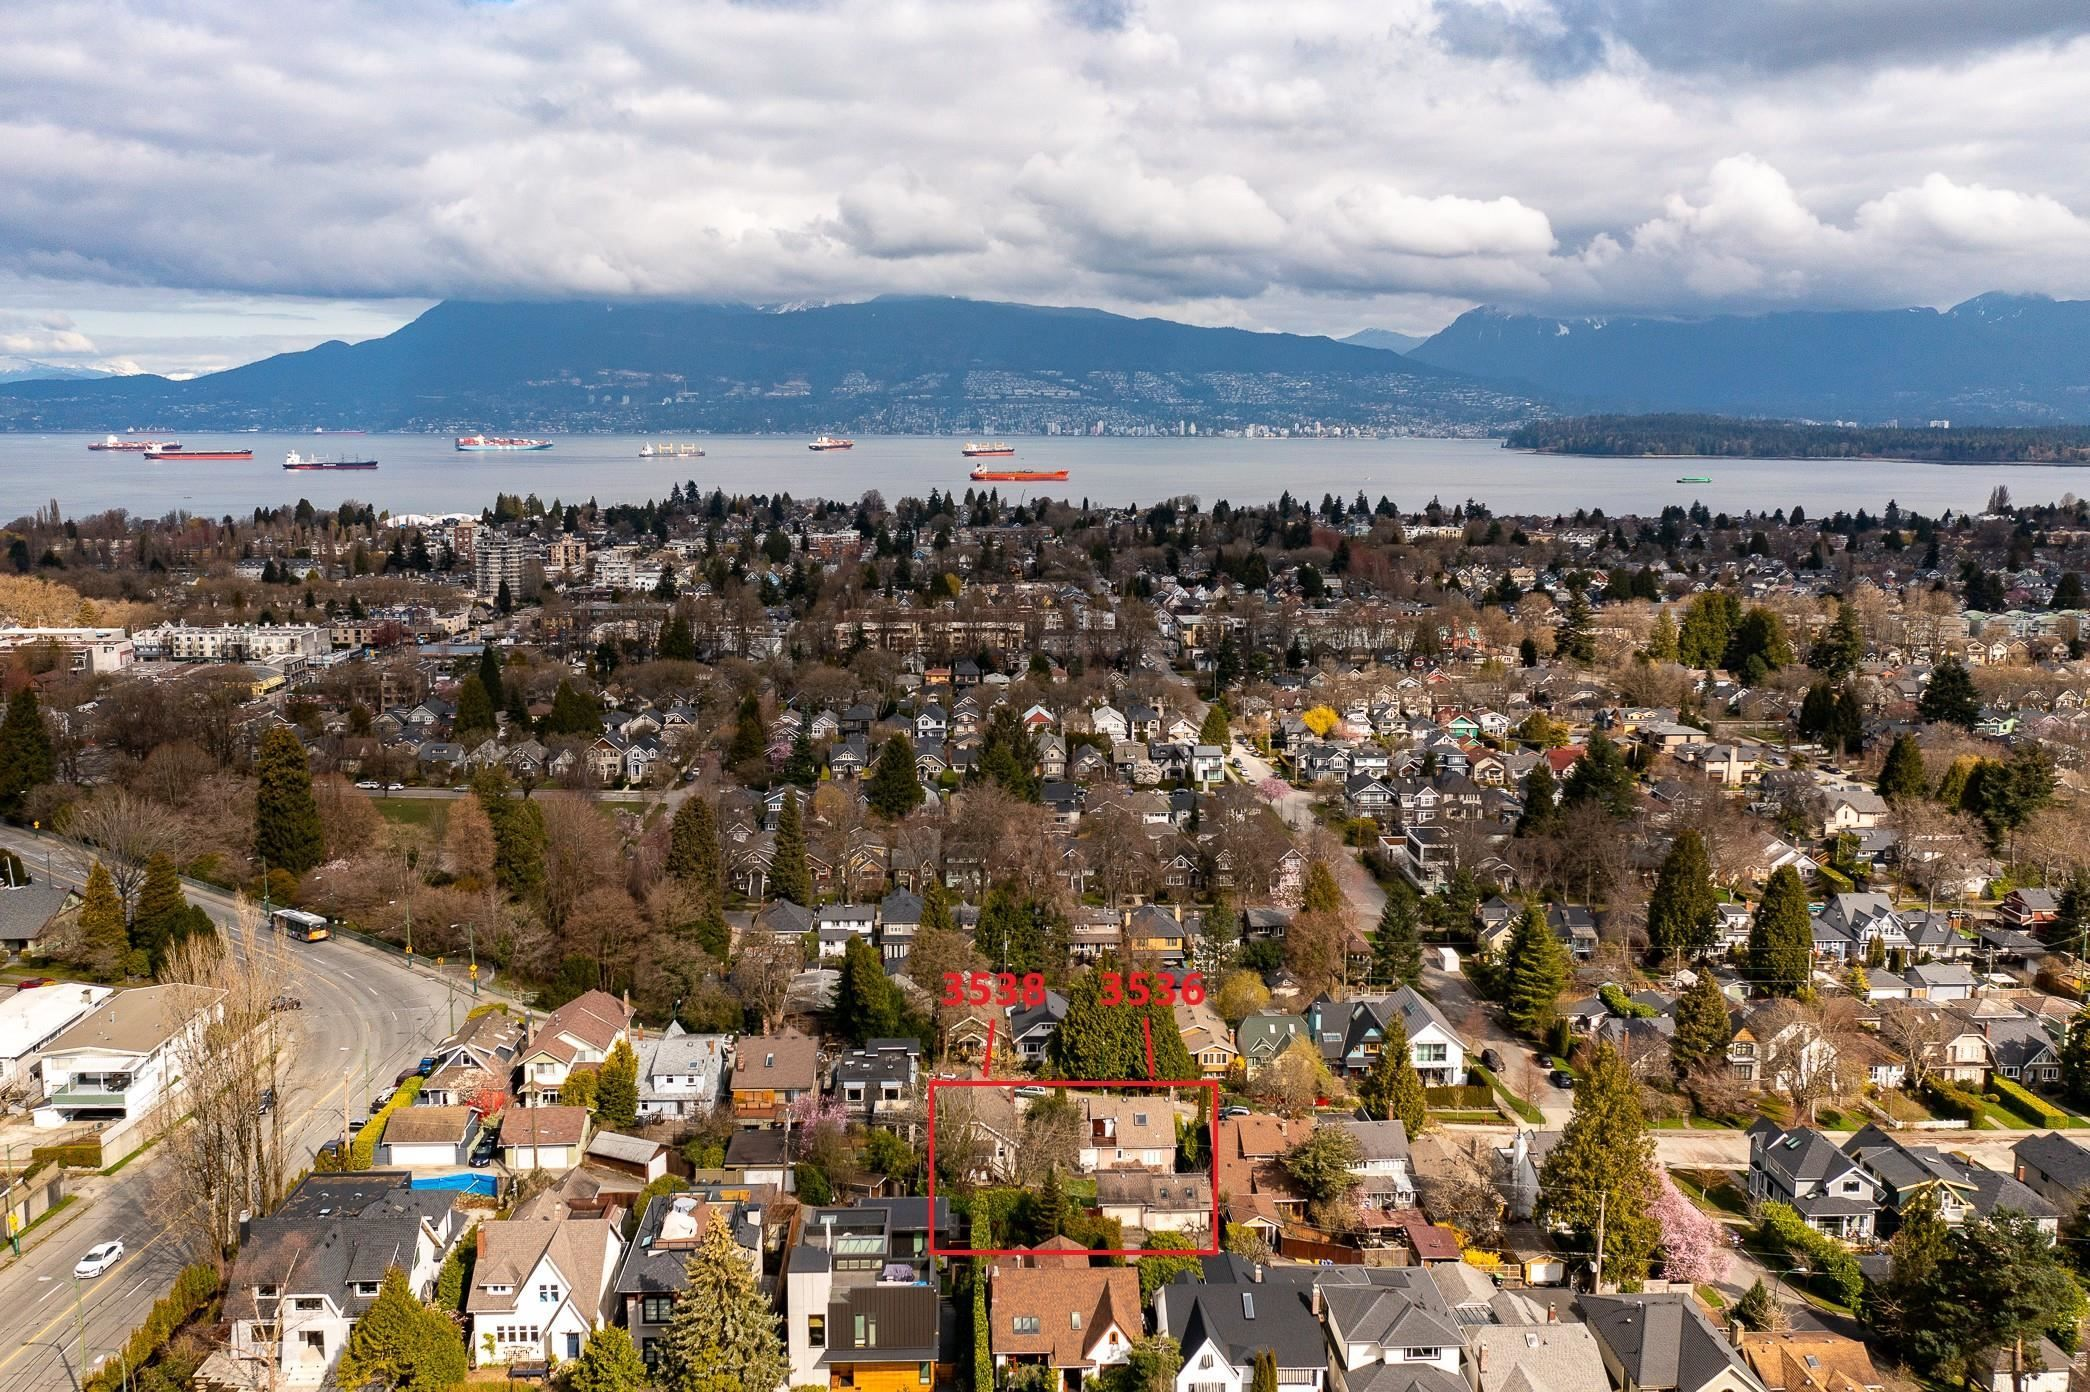 Main Photo: 3536 W 14TH Avenue in Vancouver: Kitsilano House for sale (Vancouver West)  : MLS®# R2616564